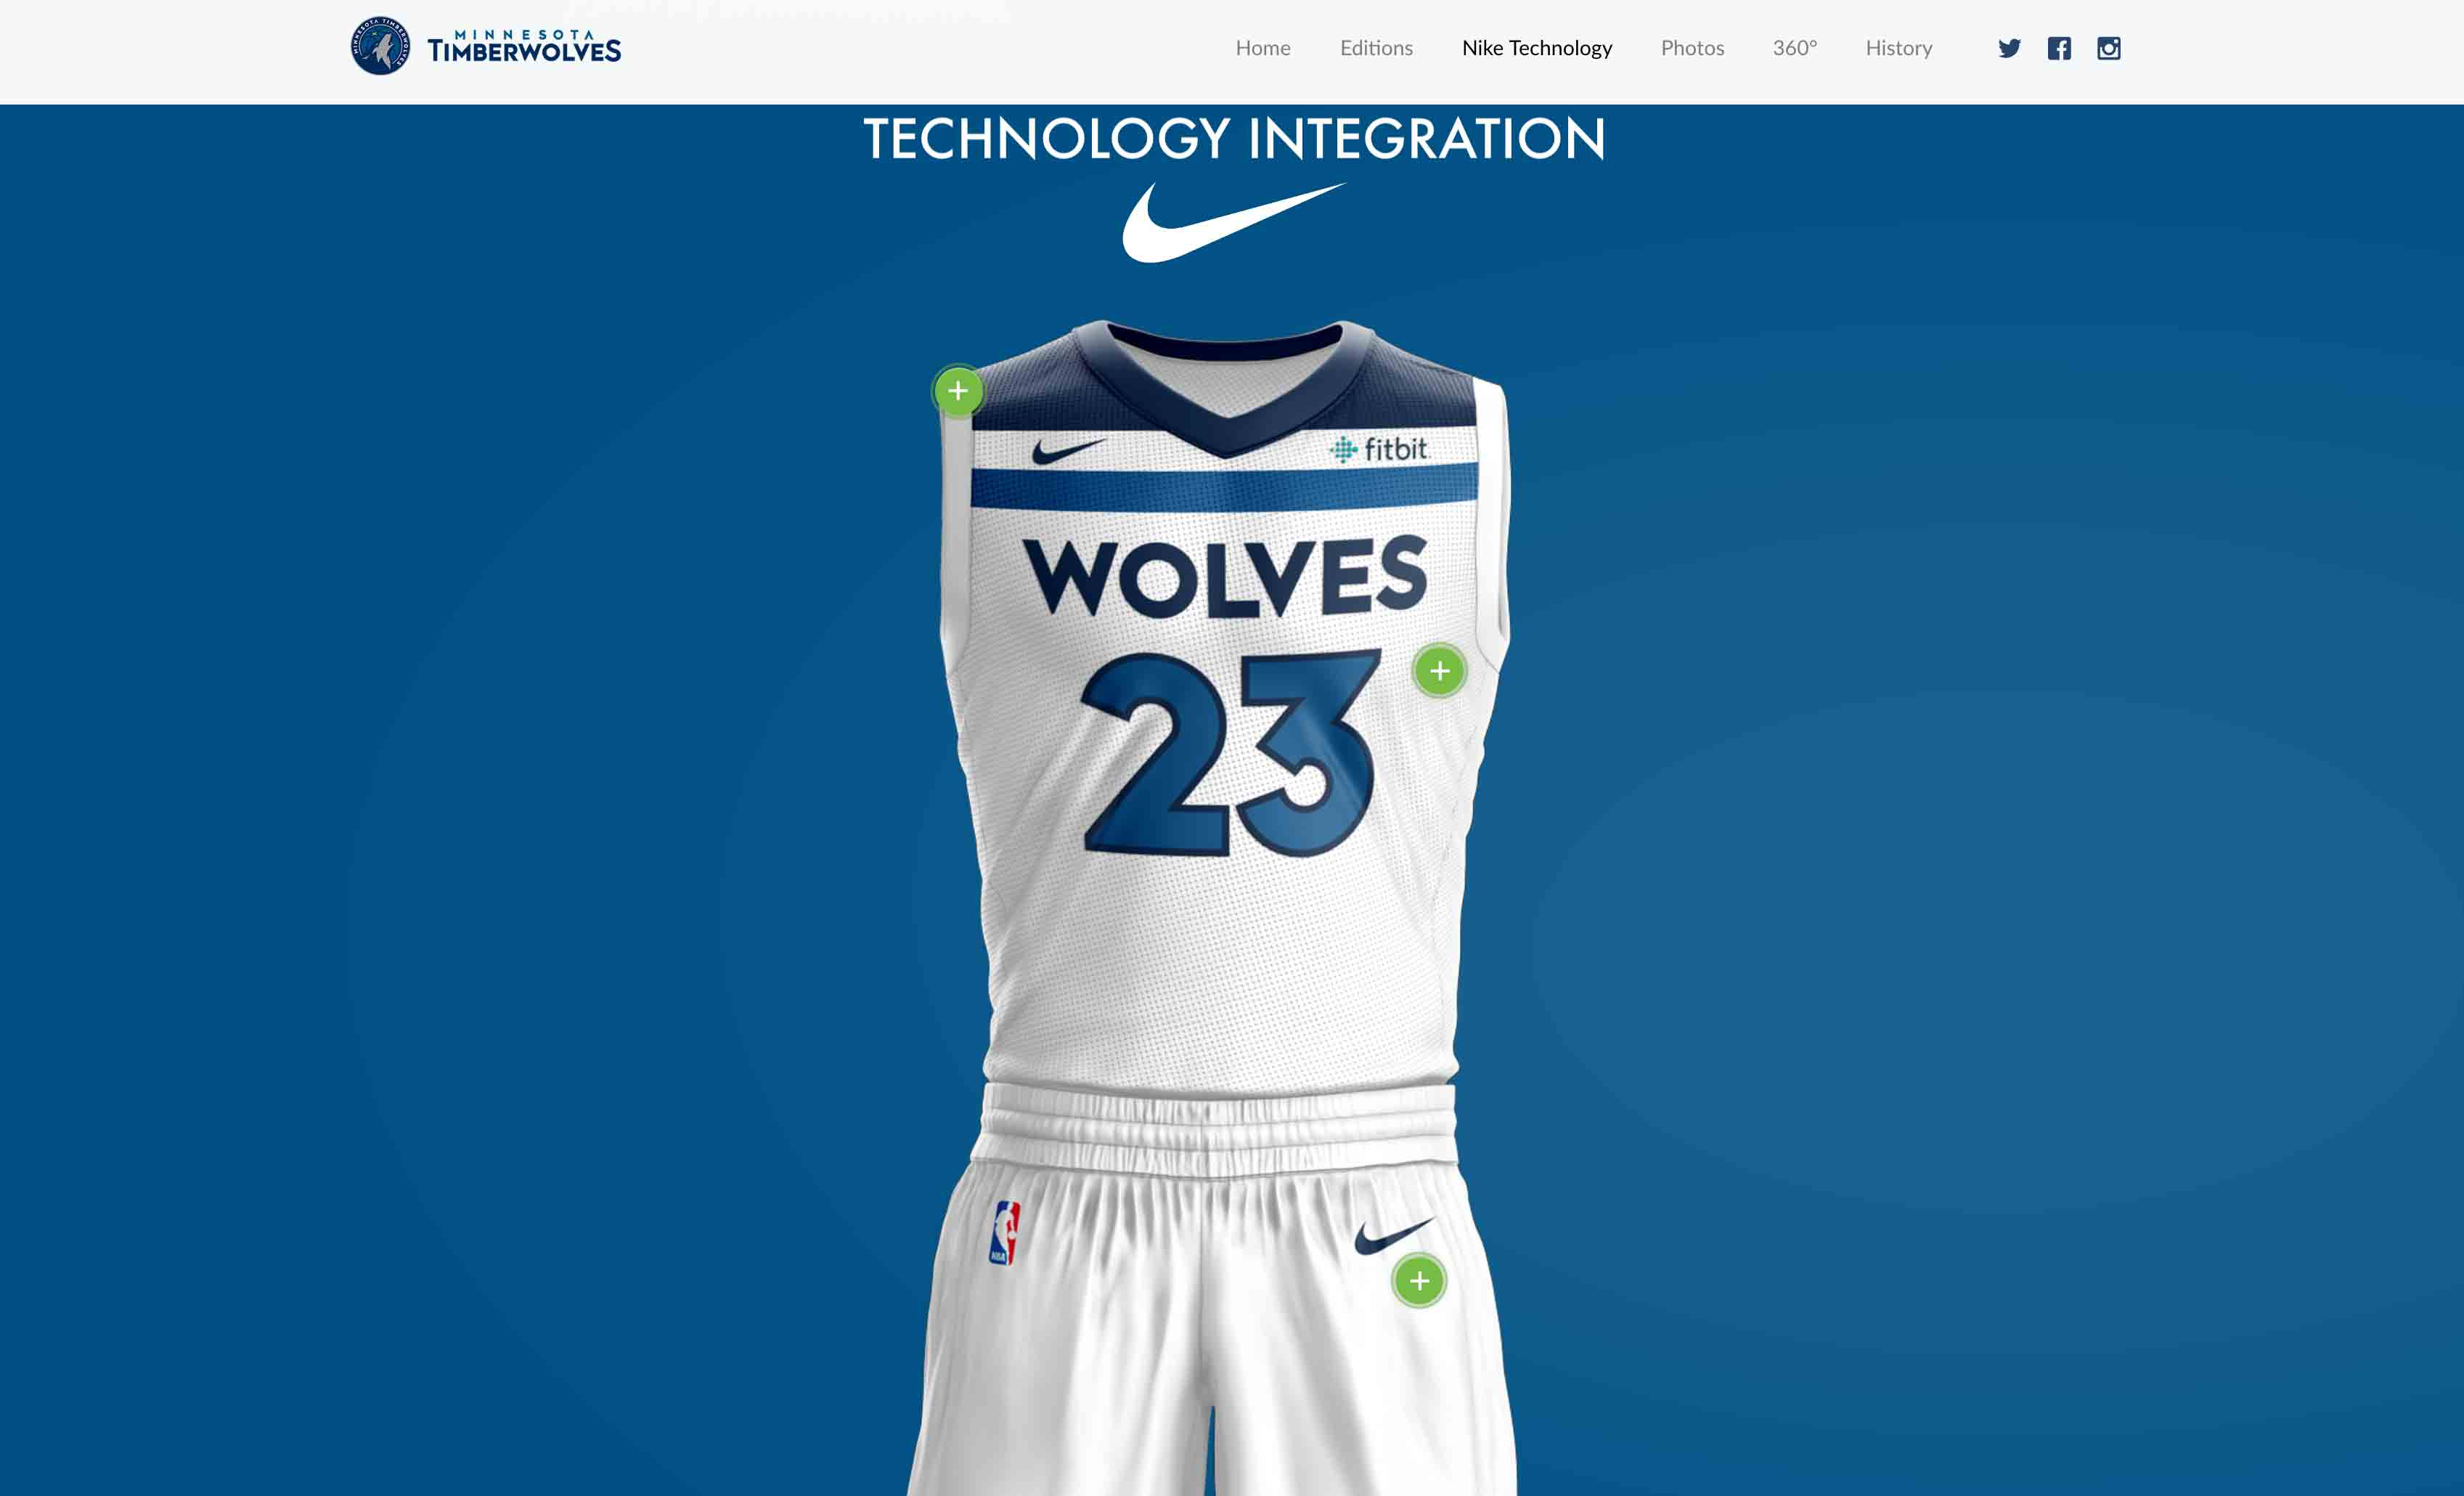 MN Timberwolves New Threads Project: Desktop View, Nike Technology Interactive Section